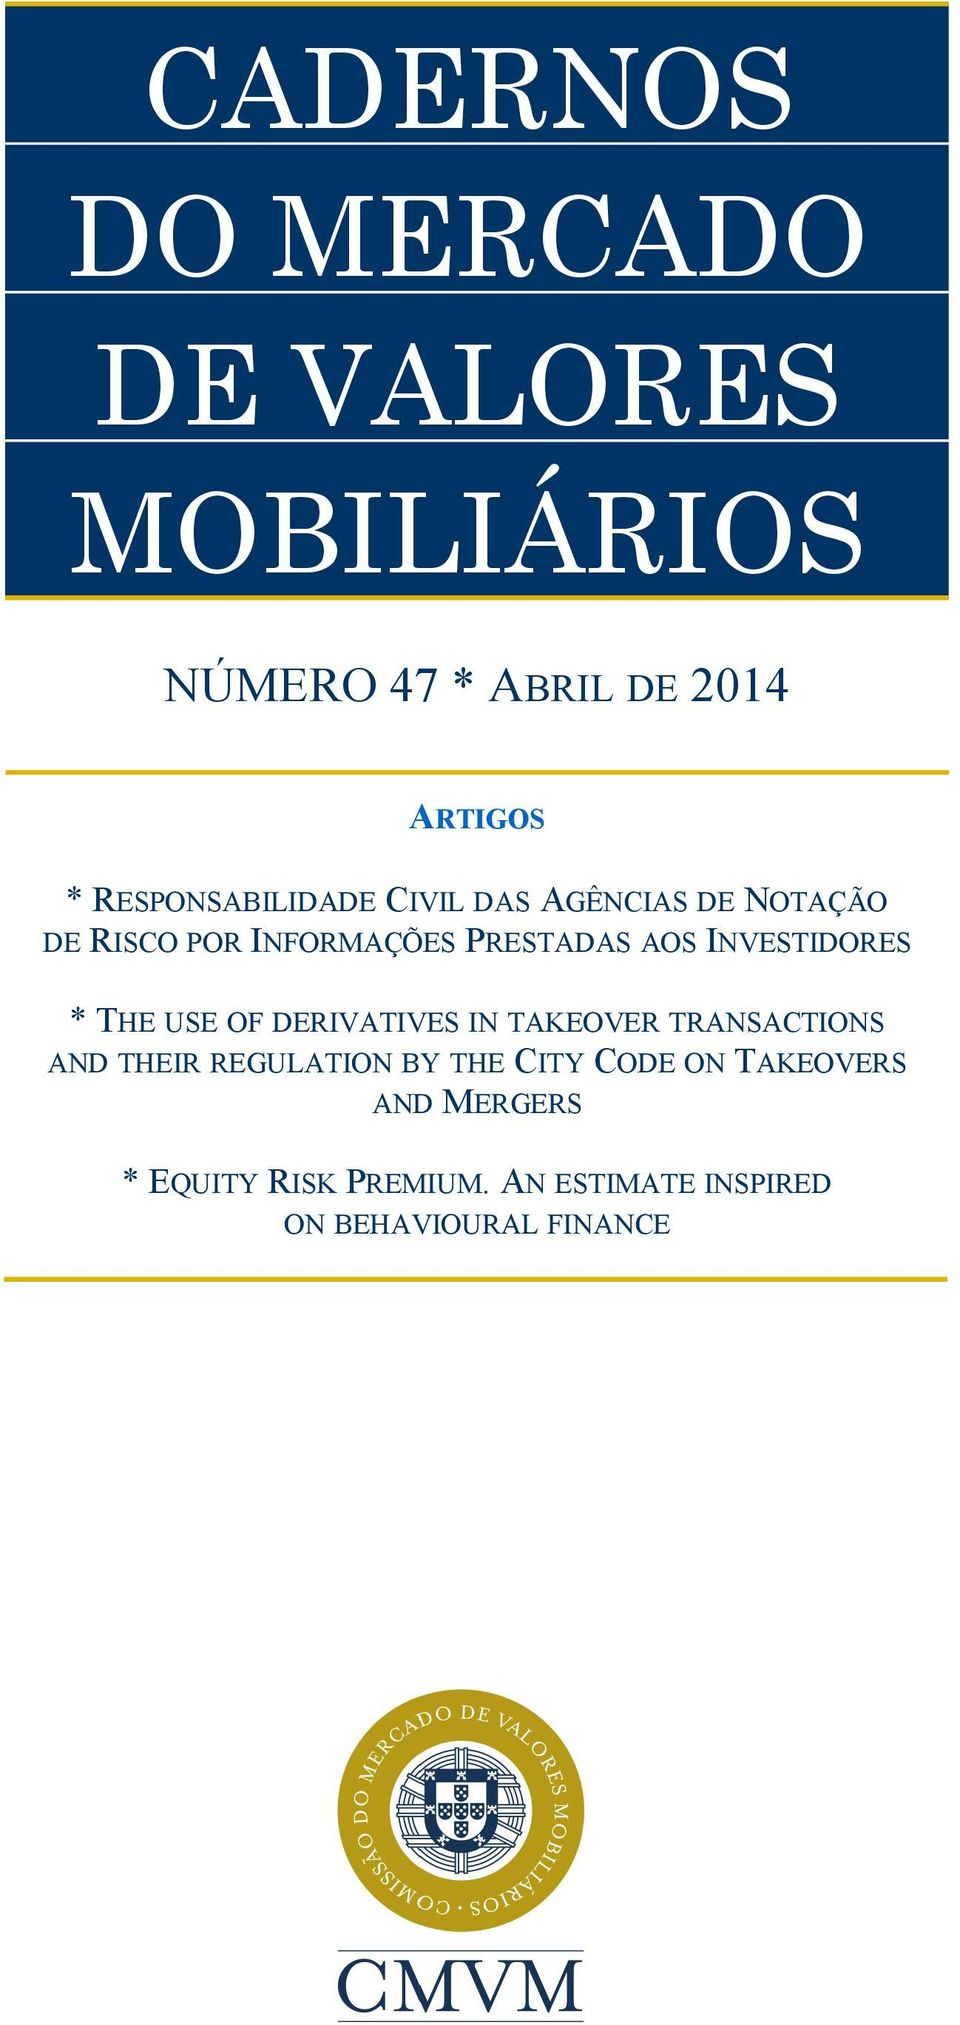 PRESTADAS AOS INVESTIDORES * THE USE OF DERIVATIVES IN TAKEOVER TRANSACTIONS AND THEIR REGULATION BY